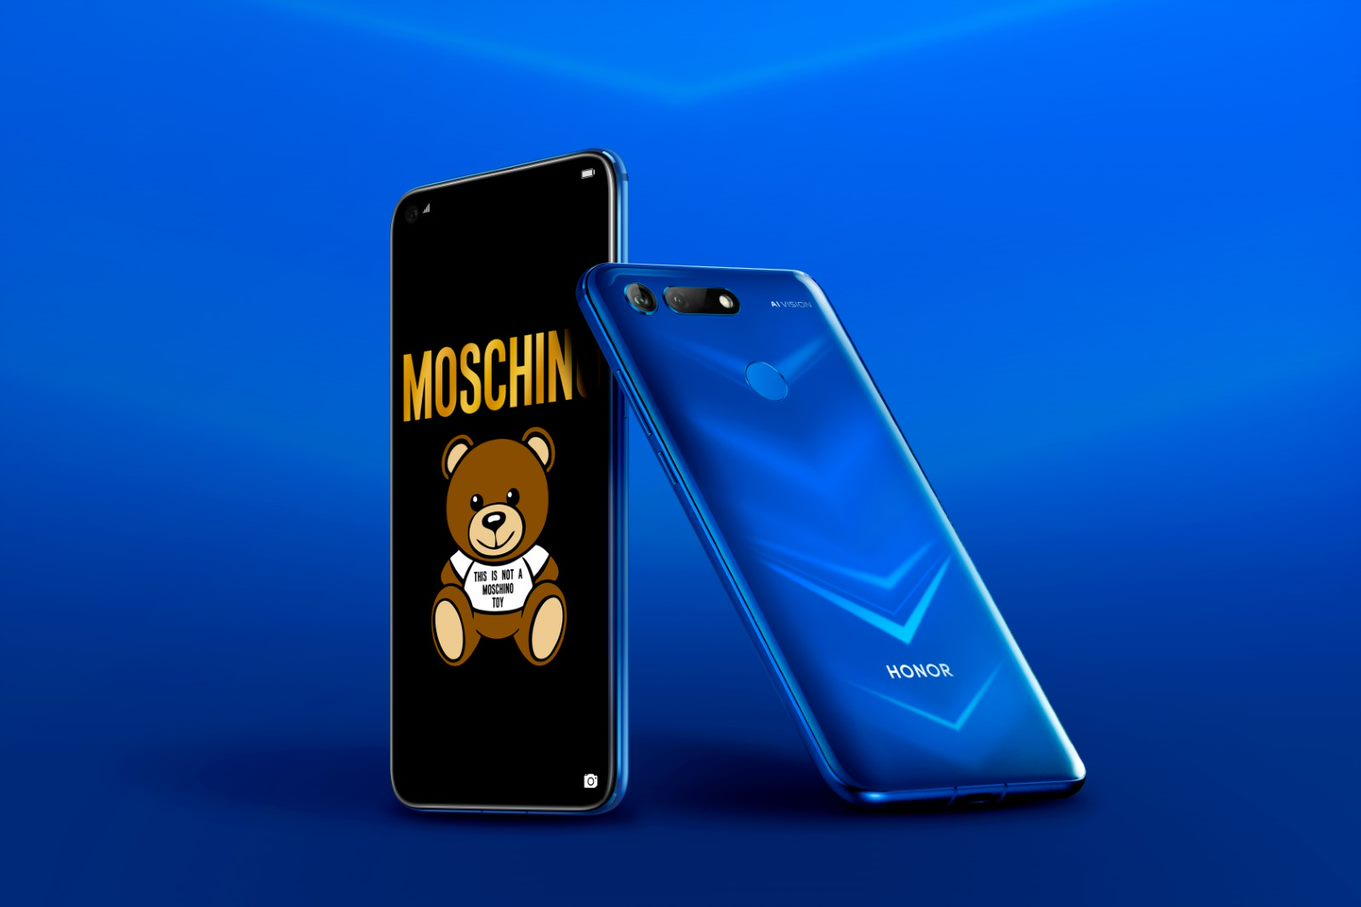 Honor View 20 Pro Moschino Edition Smartphone